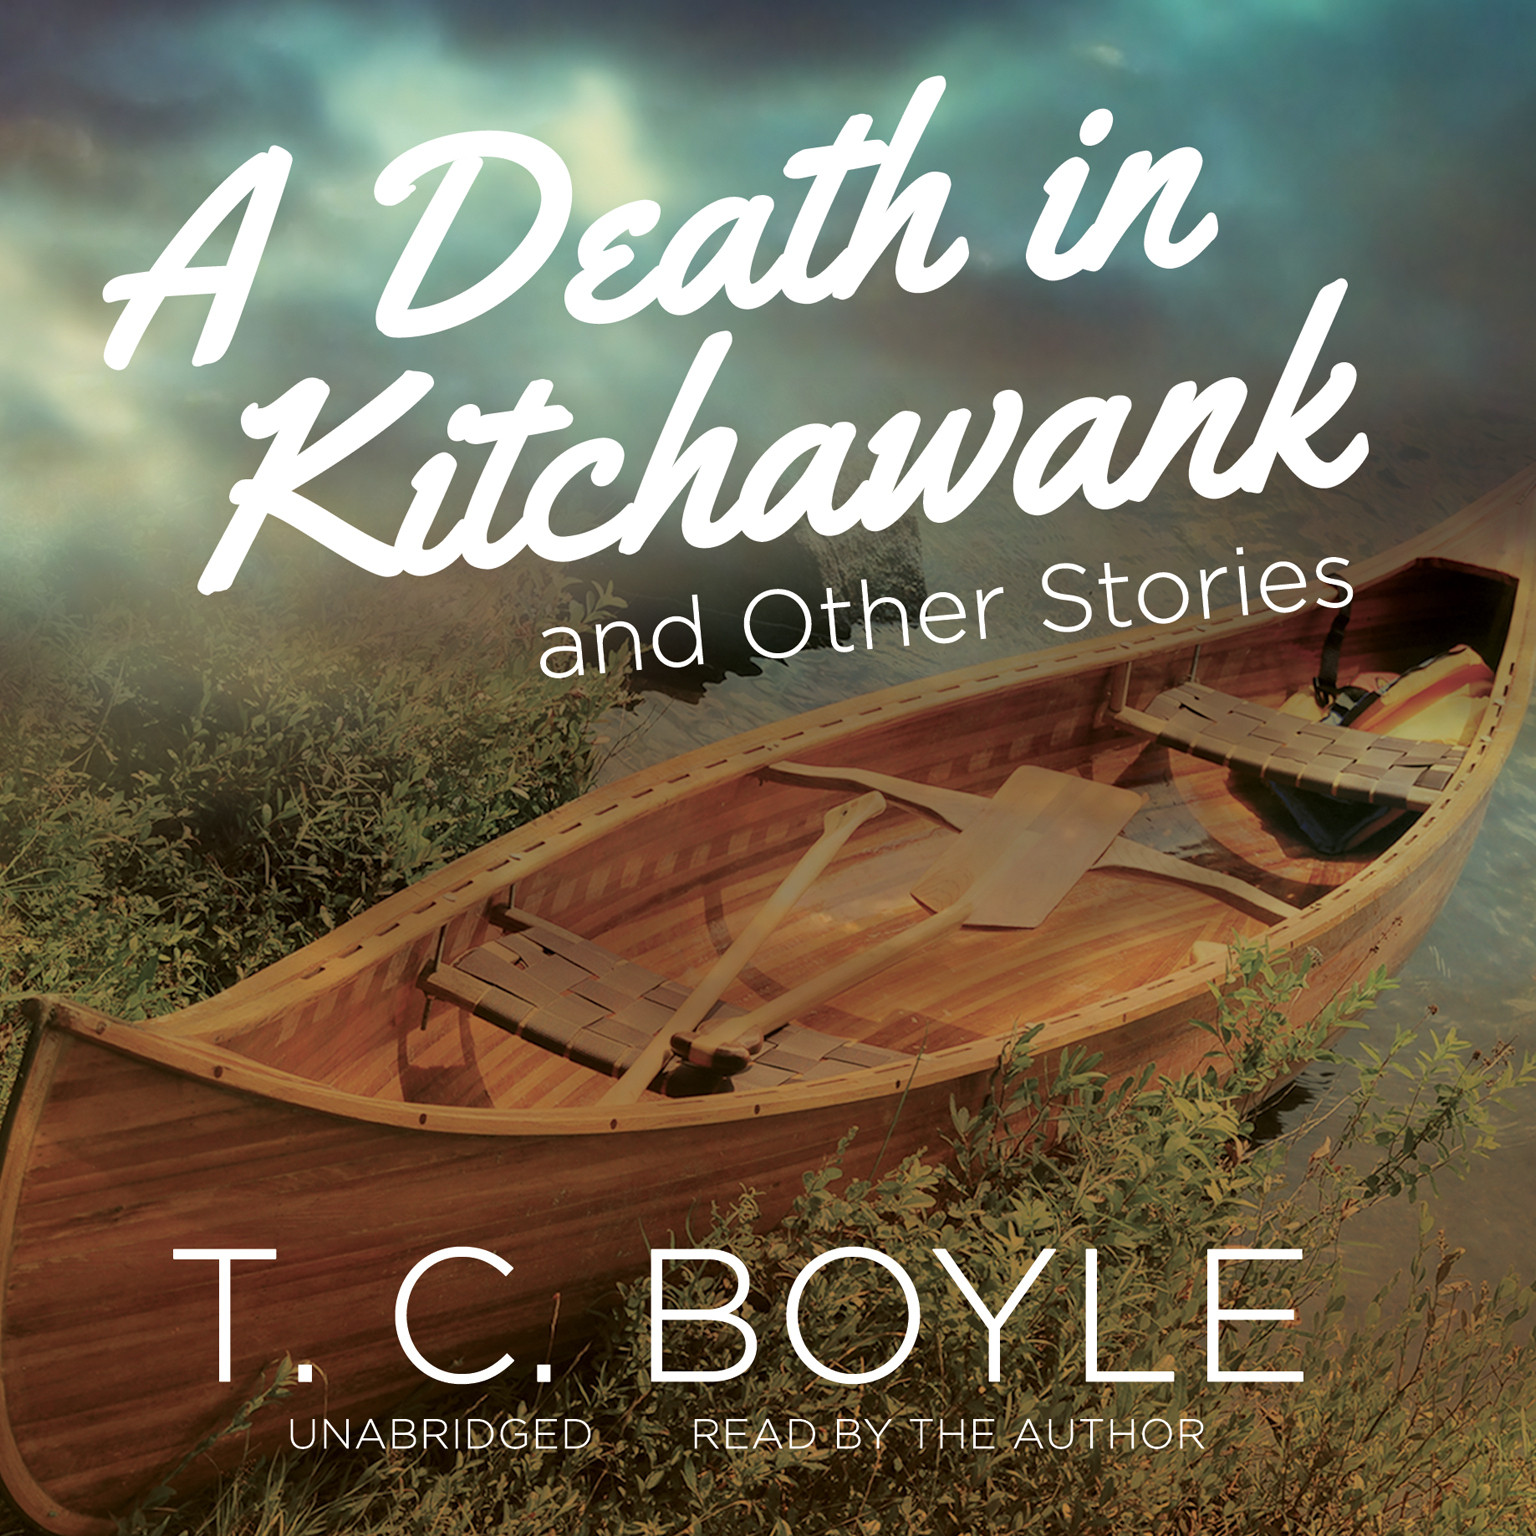 Printable A Death in Kitchawank, and Other Stories Audiobook Cover Art